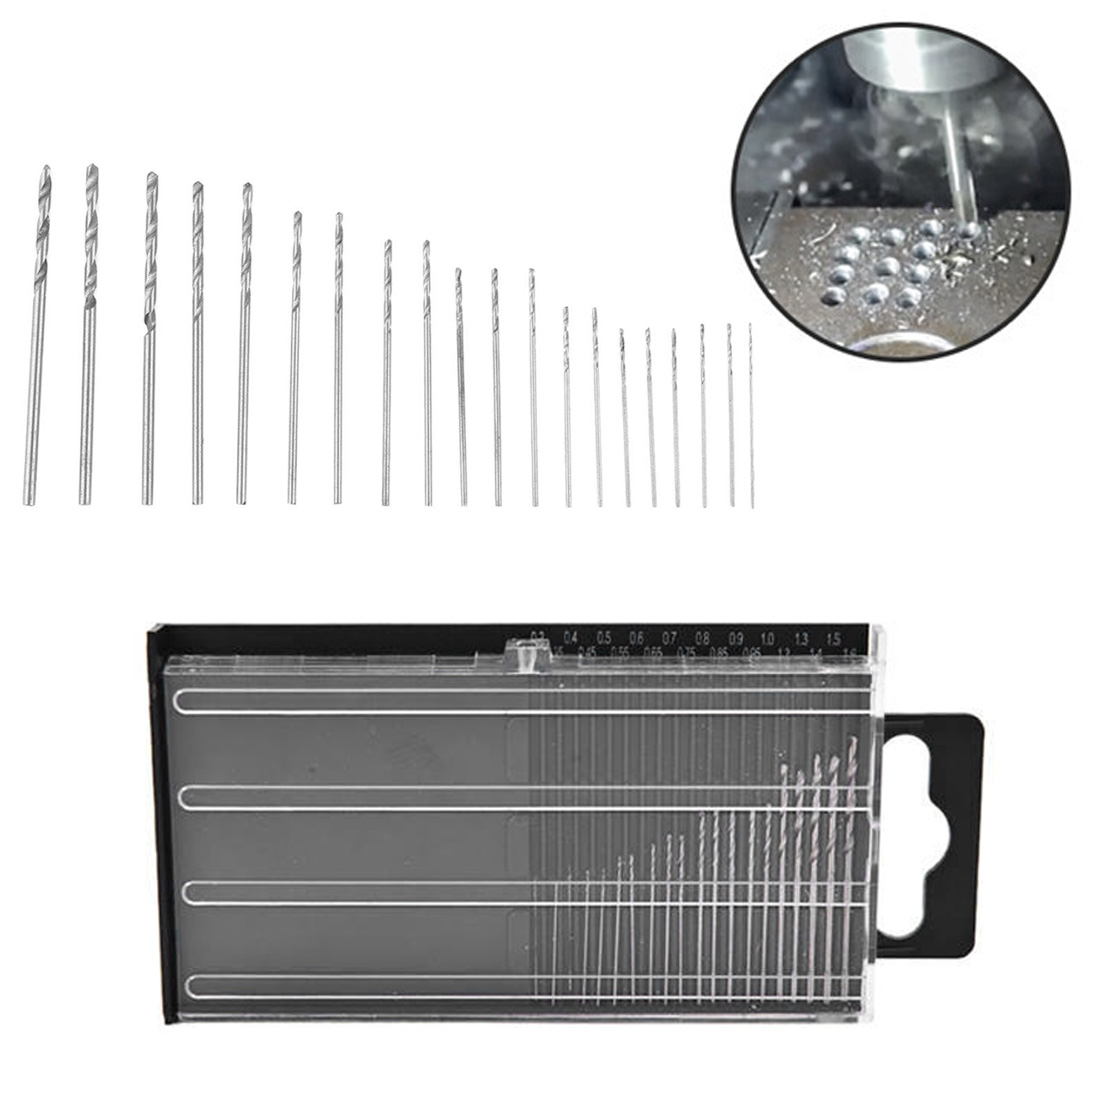 20Pcs 3mm-1.6mm Model Craft With Case Repair Parts Repair Tools Mini Drill Bit High Speed Steel Micro Twist Drill Bit Set 0.